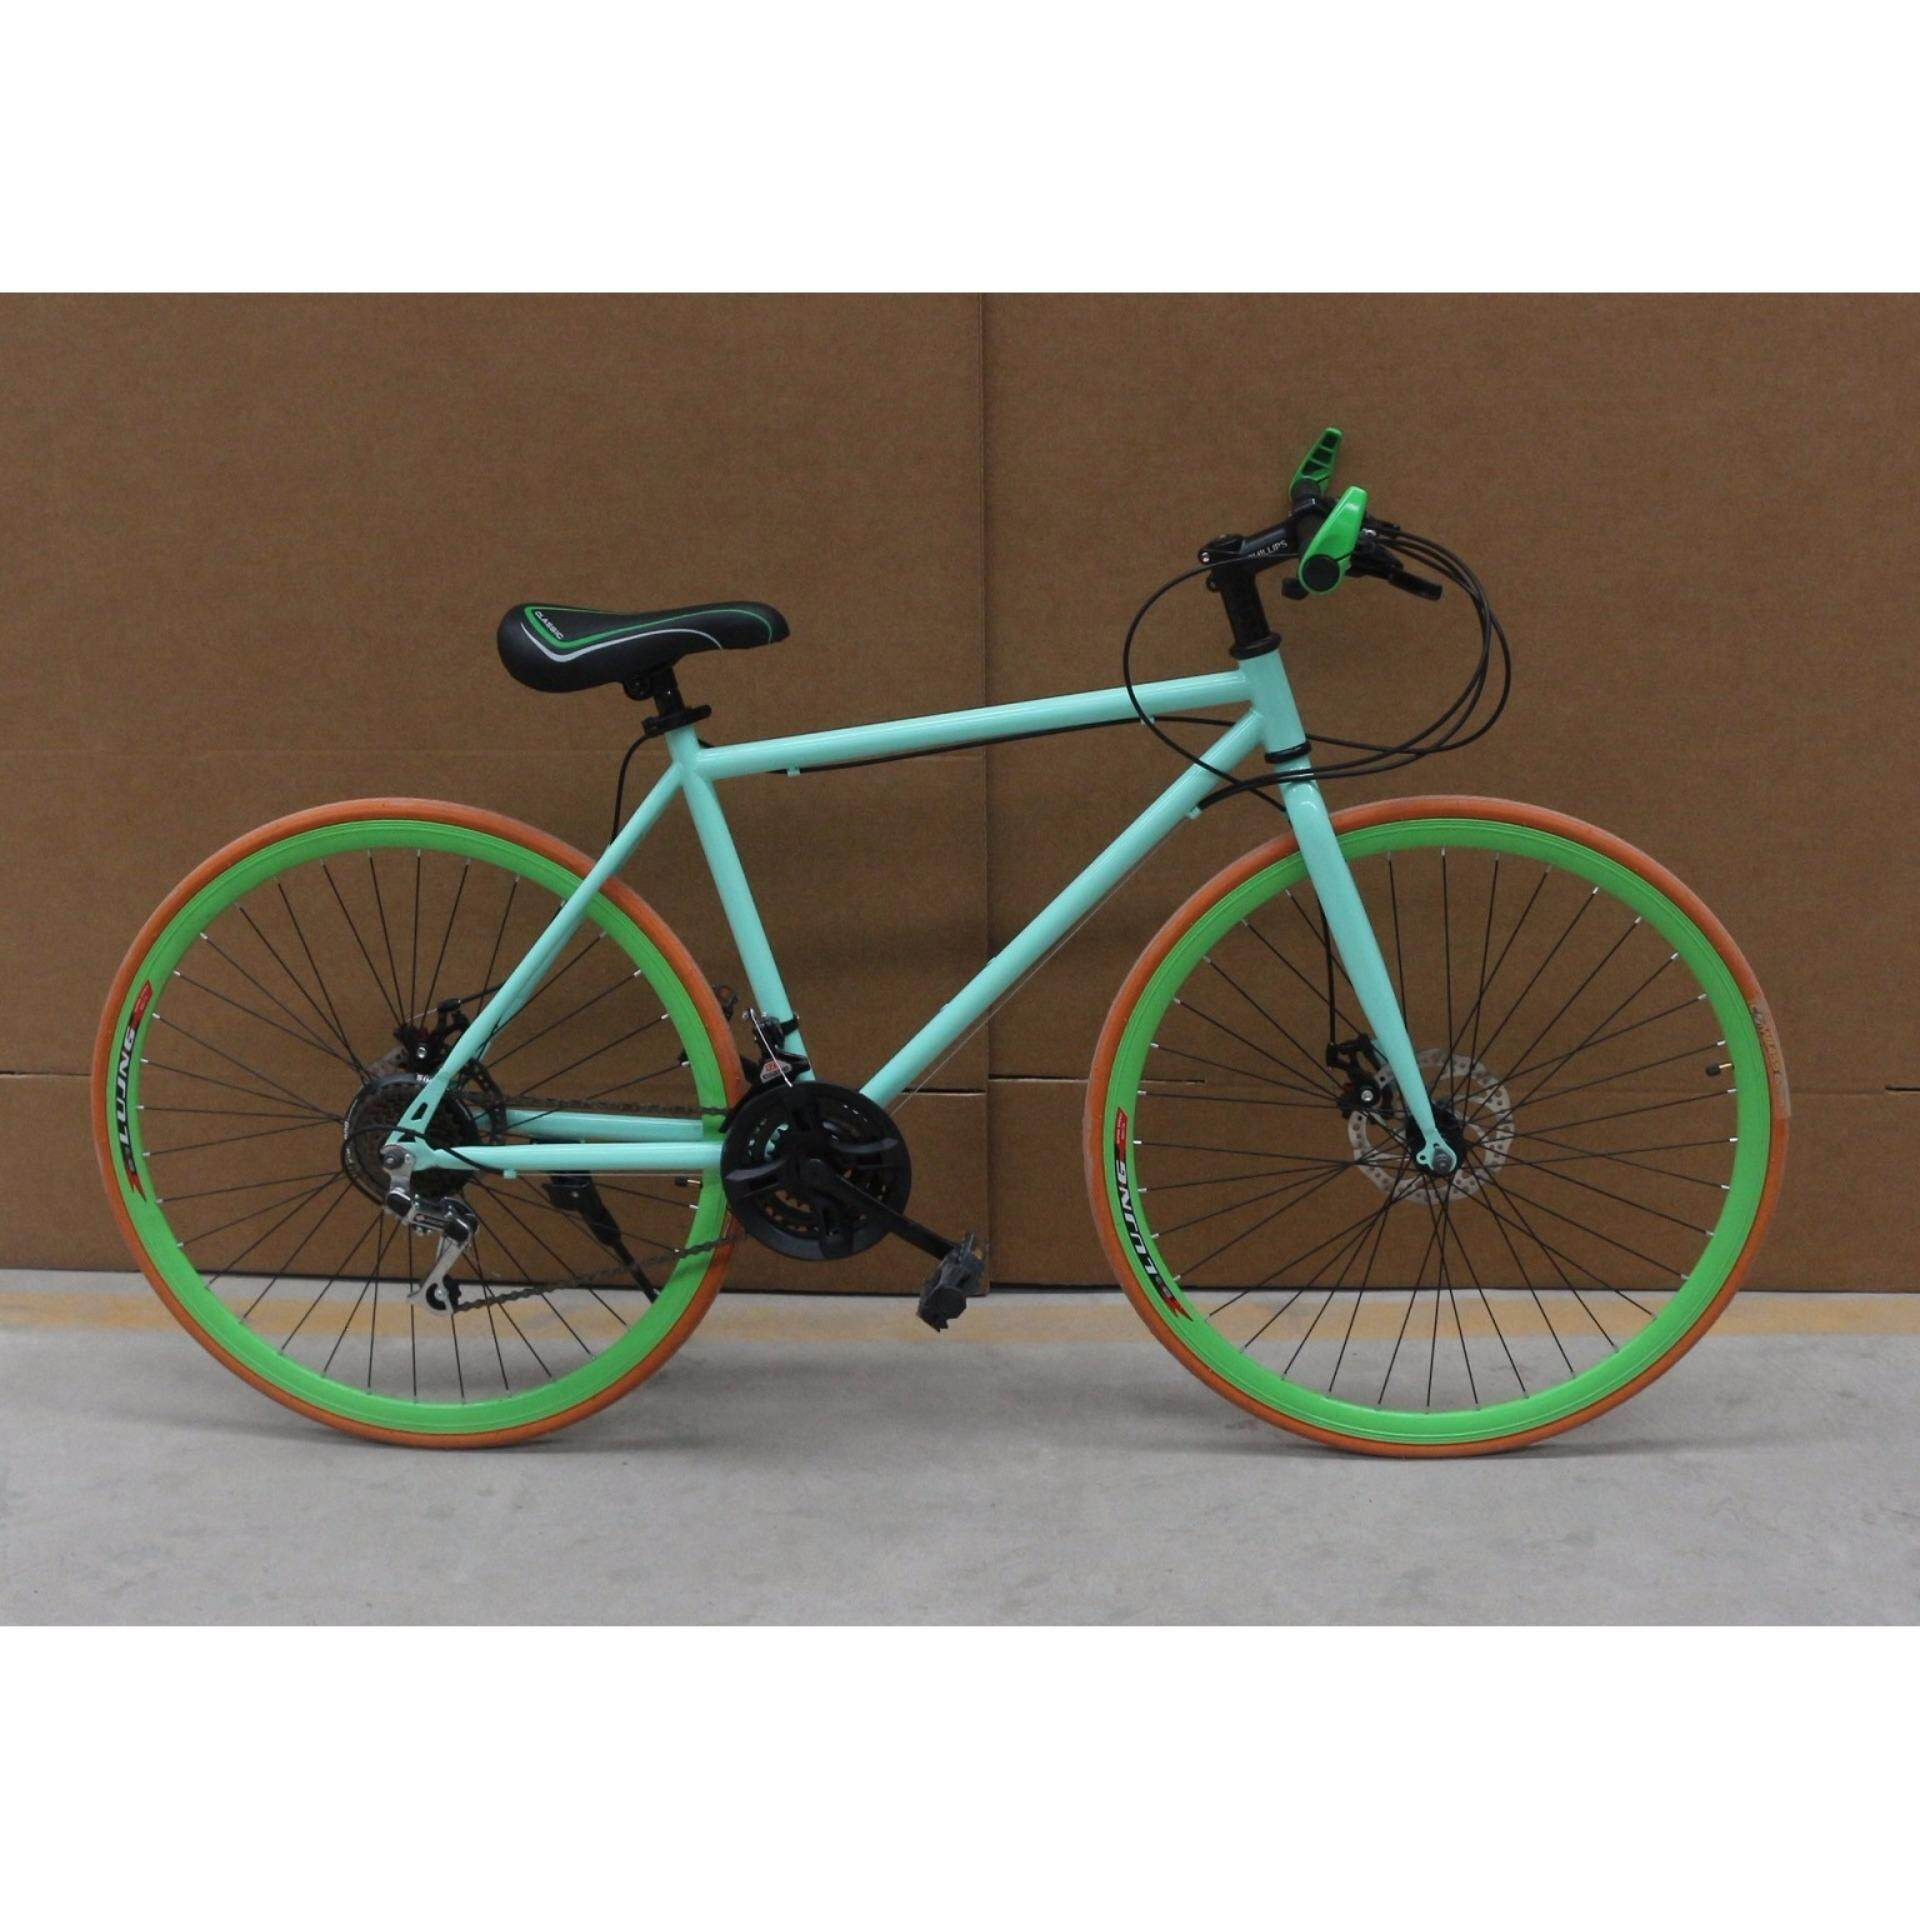 26 Inch 21 Speed Fixie Bike By Power Rider.